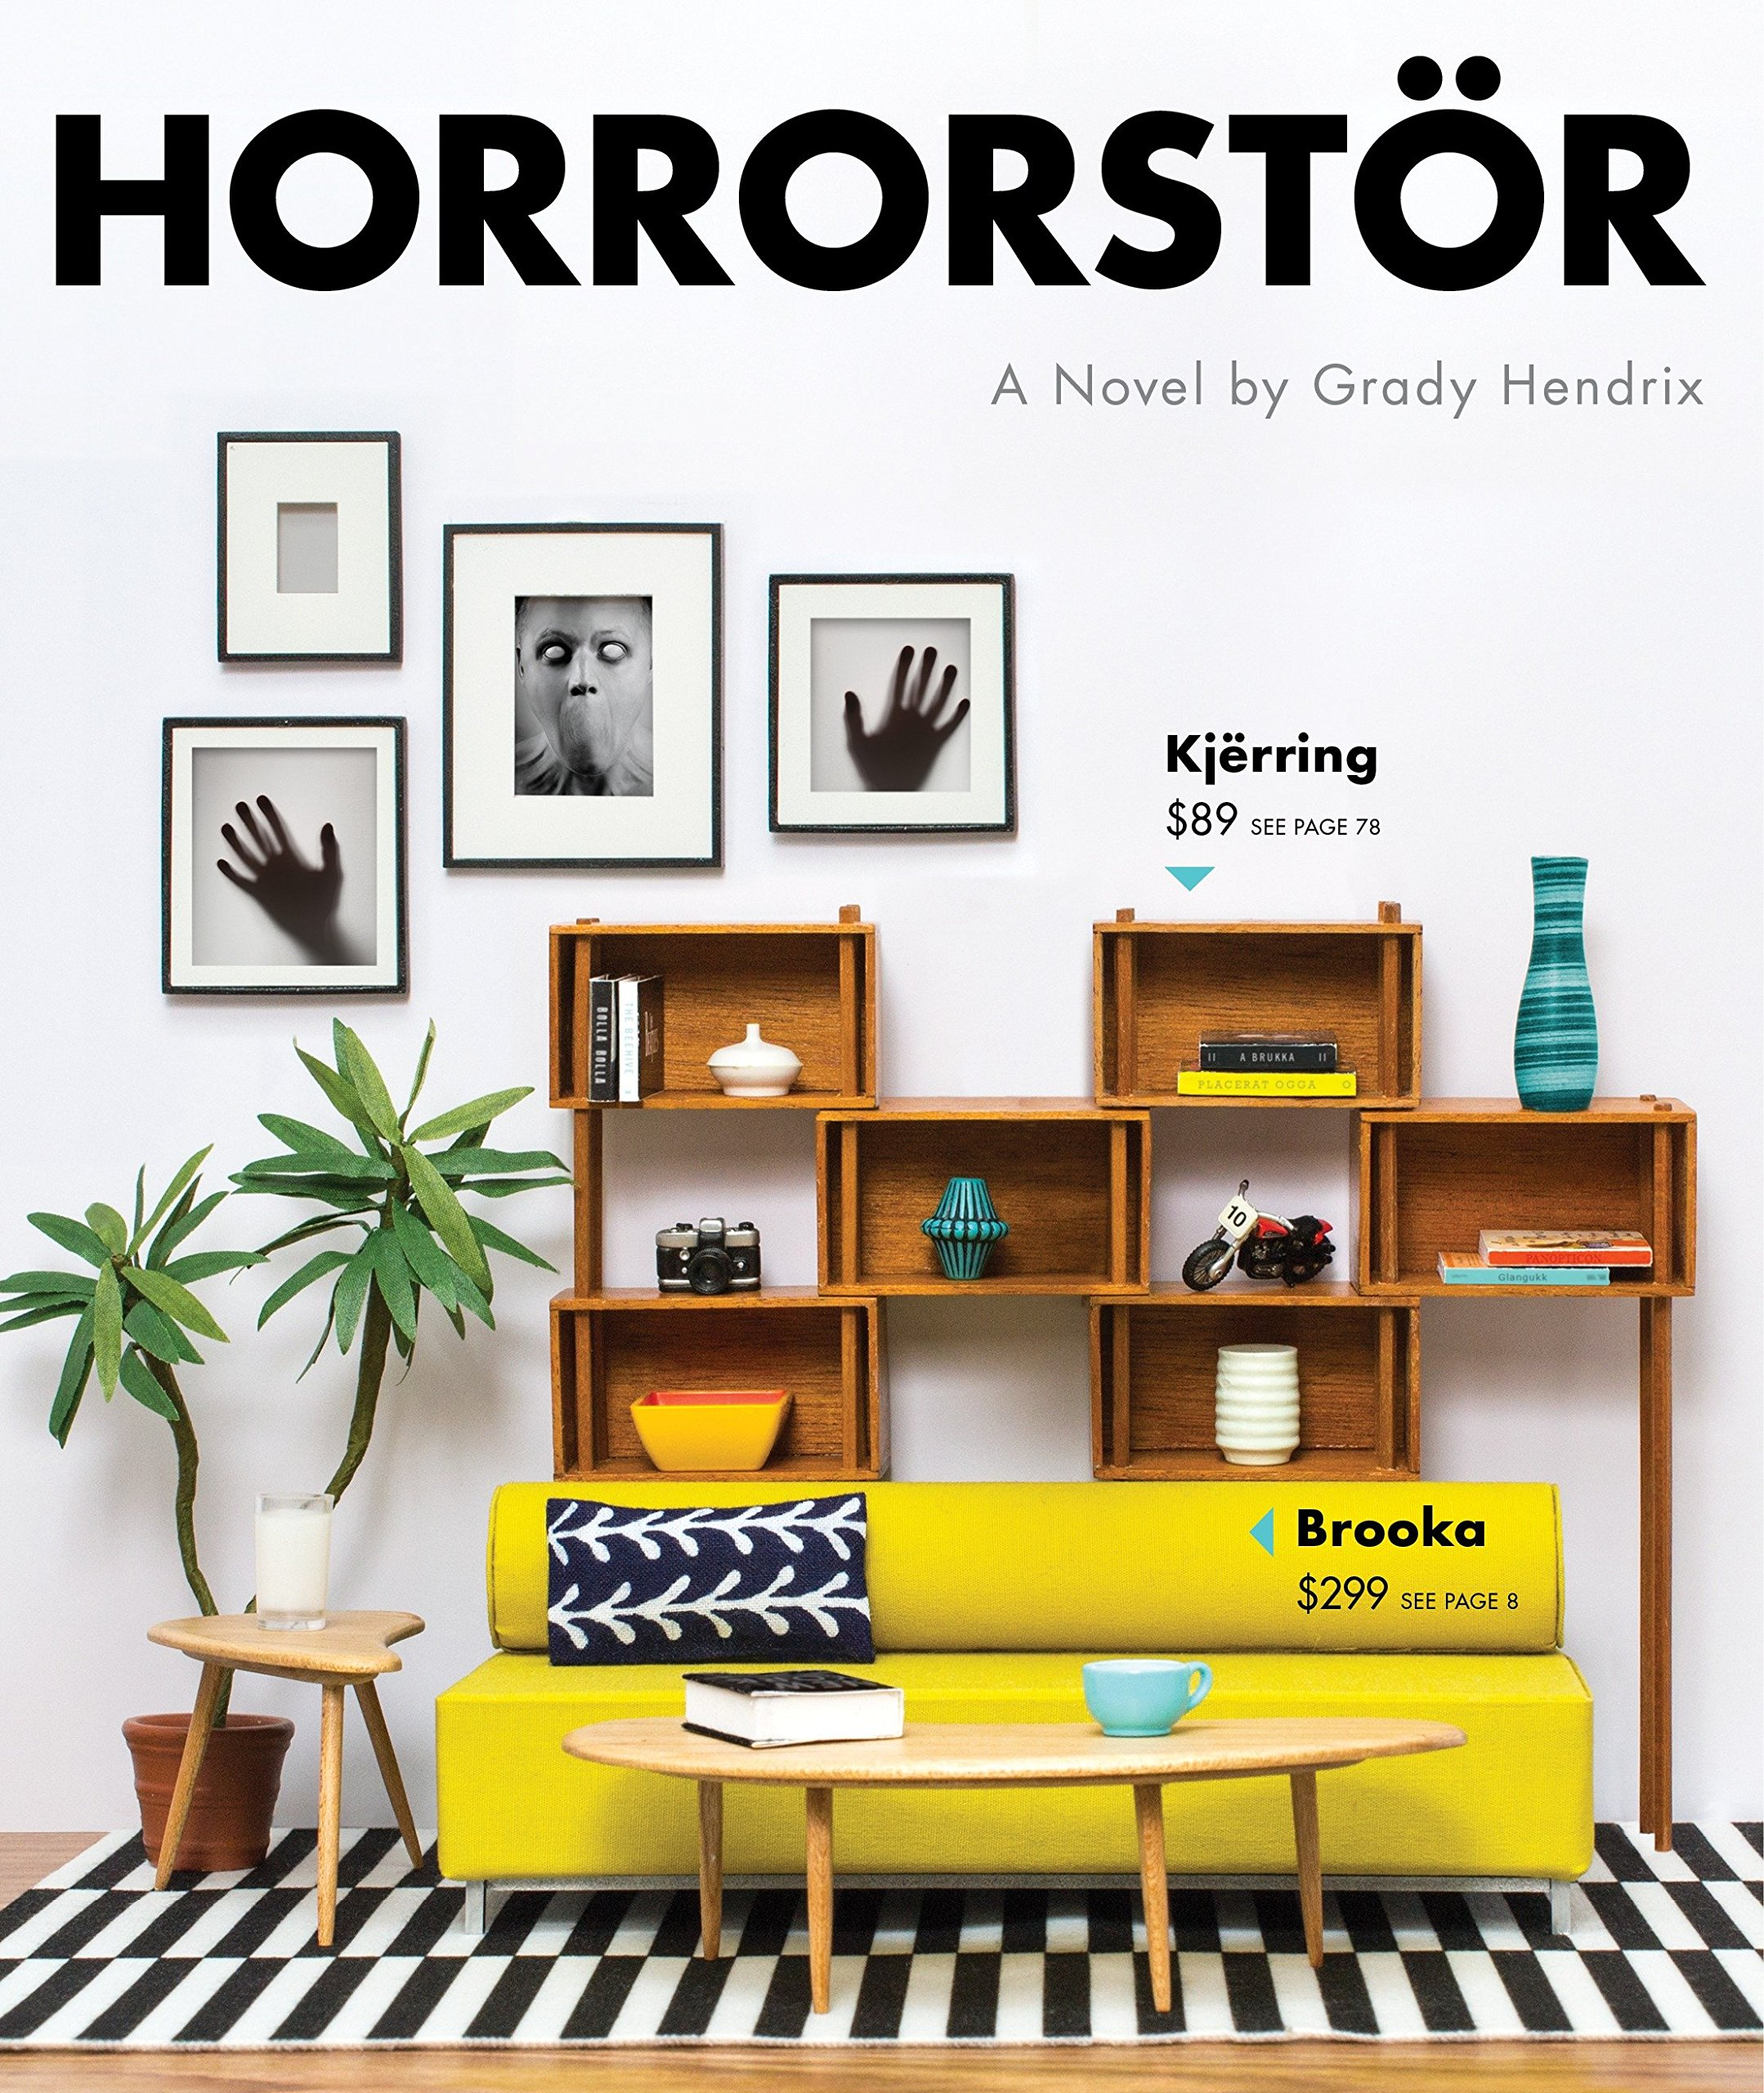 Image result for horrorstor cover